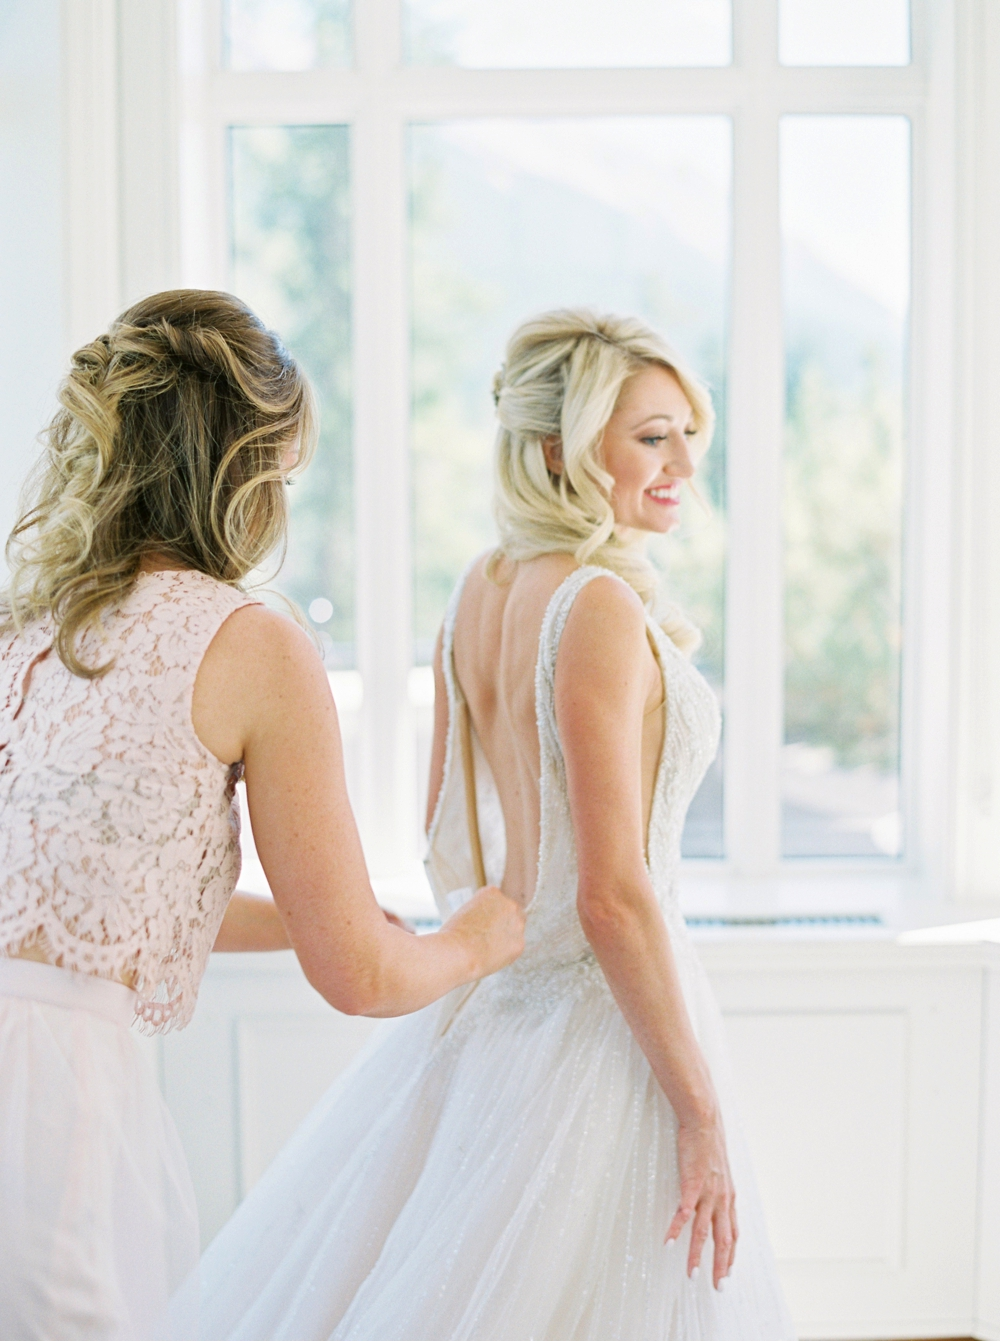 Bride Getting ready wedding | Banff Wedding Photographers | Justine Milton fine art film photography